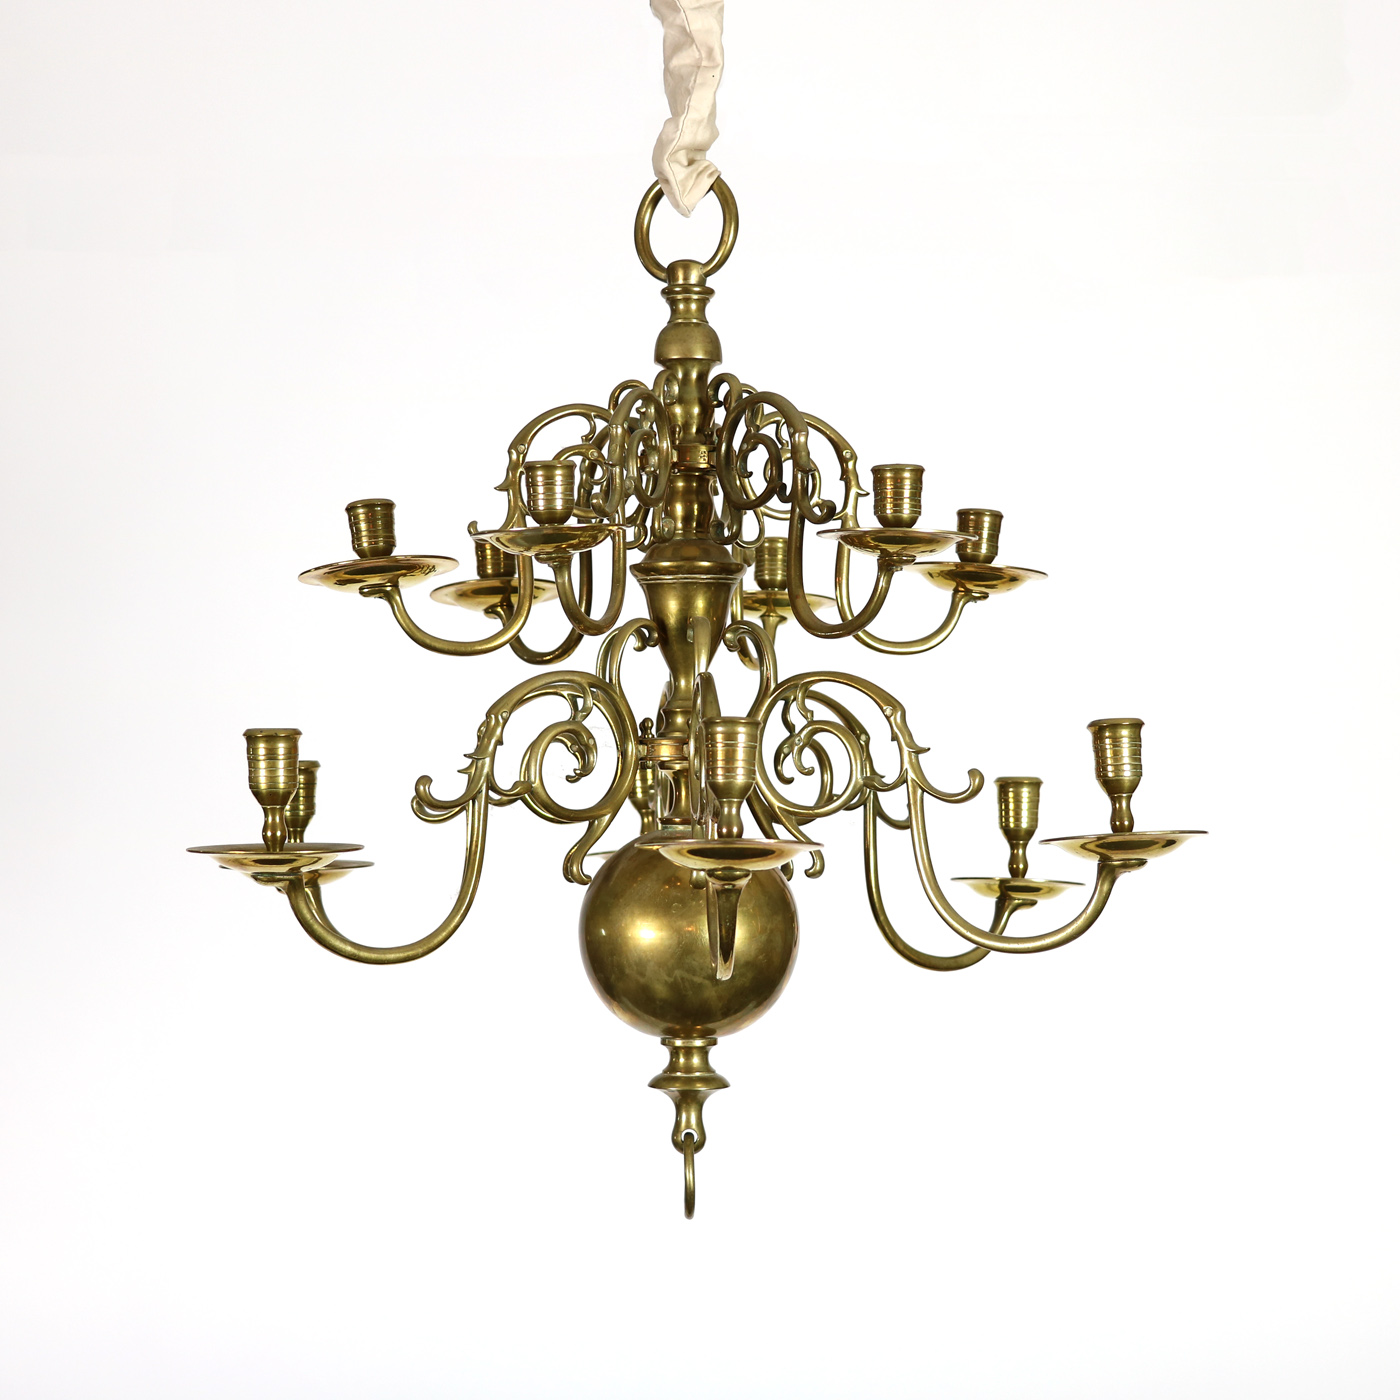 Two tiered twelve light dutch brass chandelier 19th century garden court antiques small scale 12 light dutch brass chandelier holland circa 1880 aloadofball Images